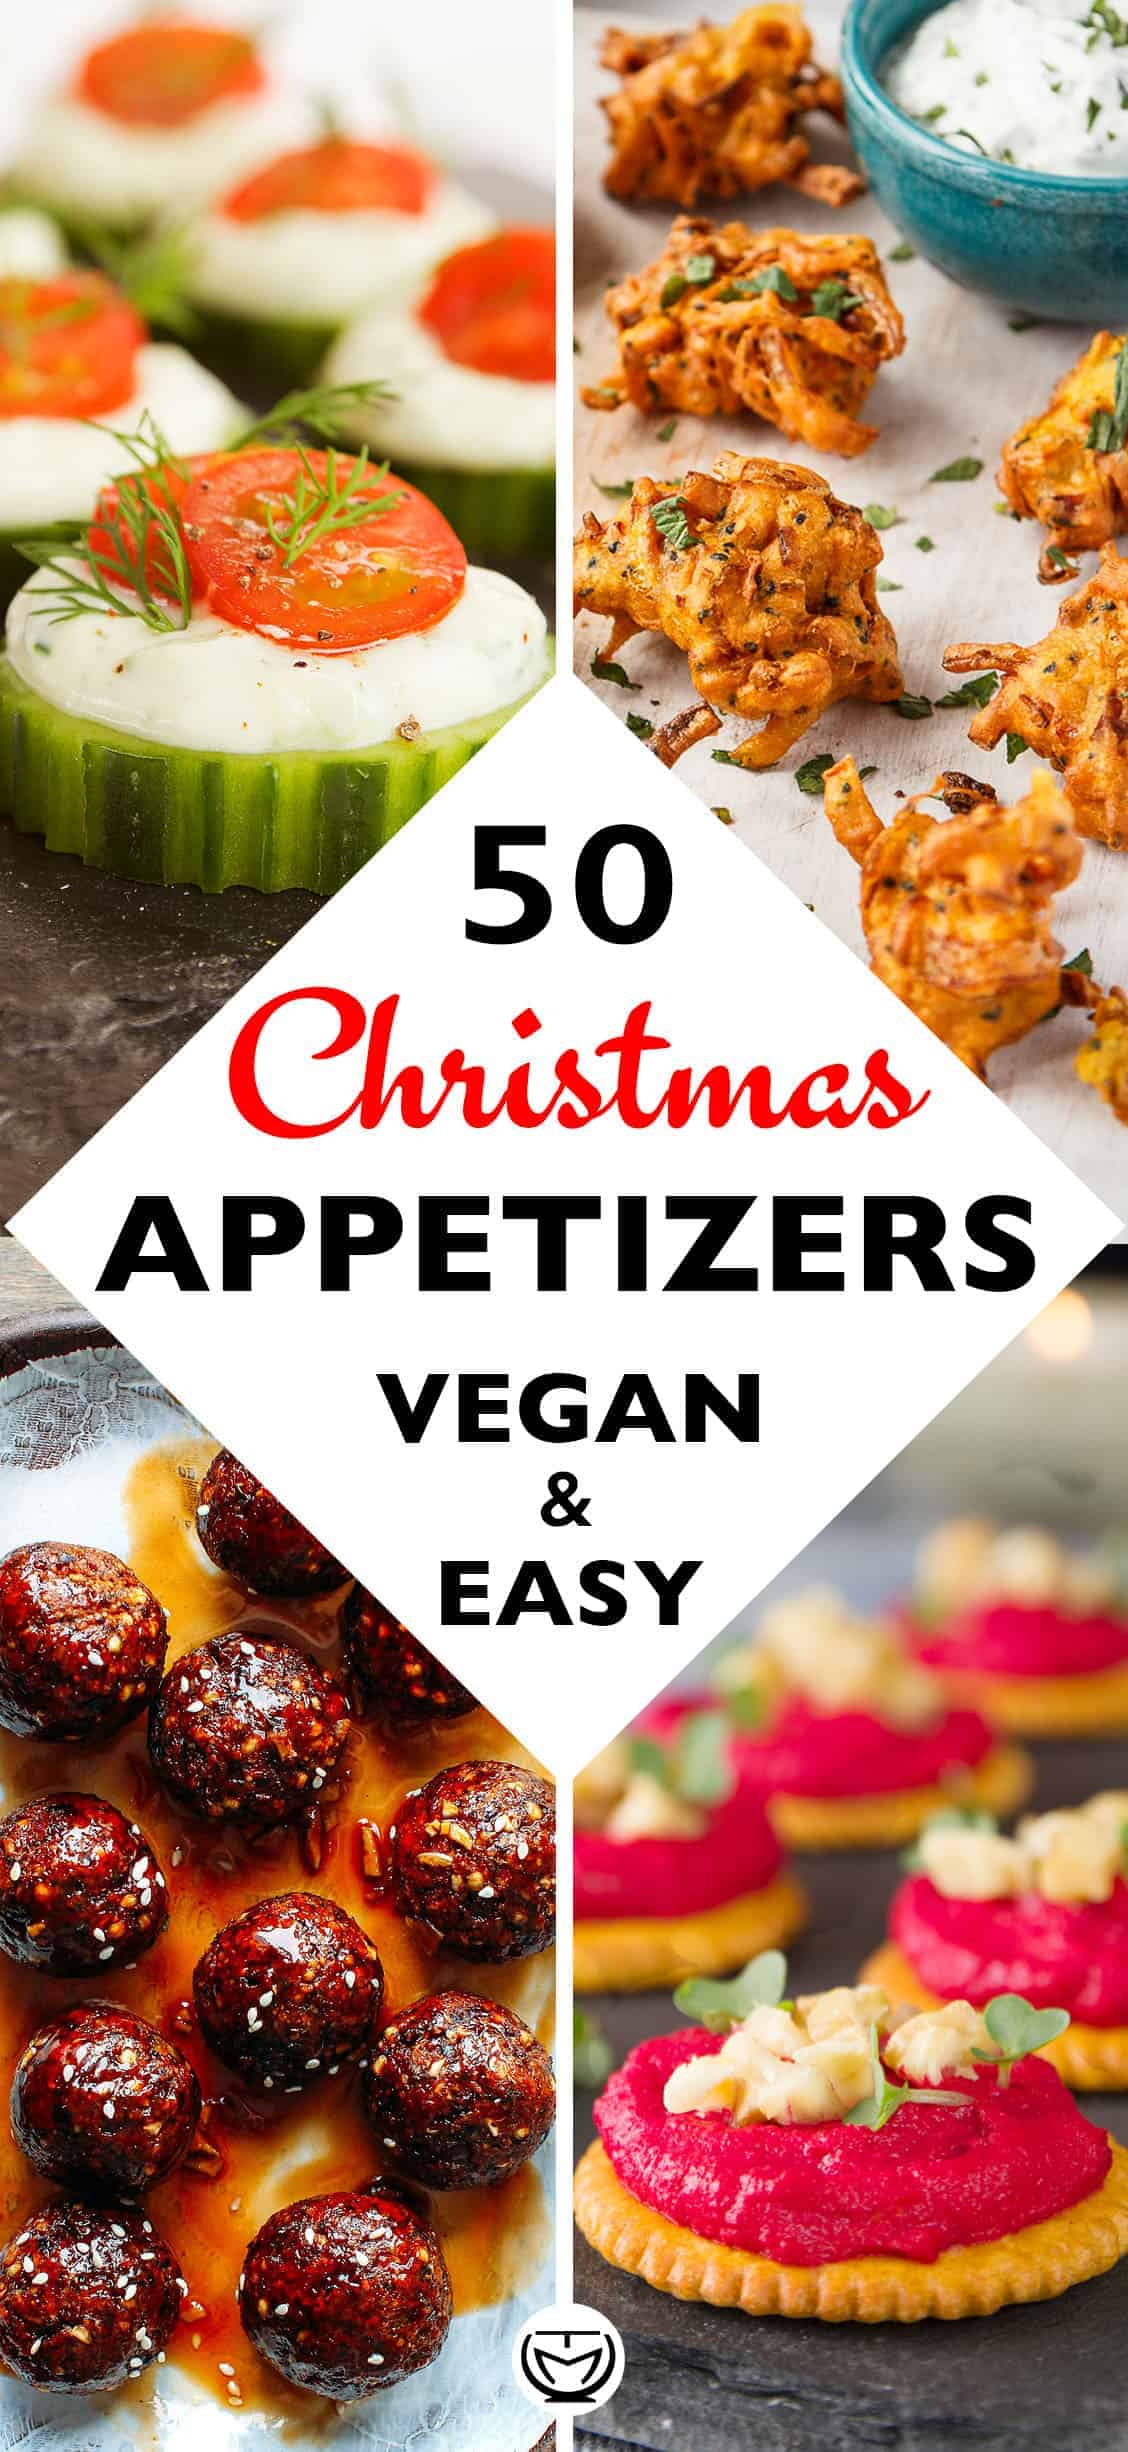 These delicious and easy vegan appetizers are what you'll need for your Christmas feast. The most incredible, healthy and inexpensive party food perfect to please a crowd! #christmasrecipes #appetizersforparty #veganrecipes #veganappetizers #fingerfood #partyfood